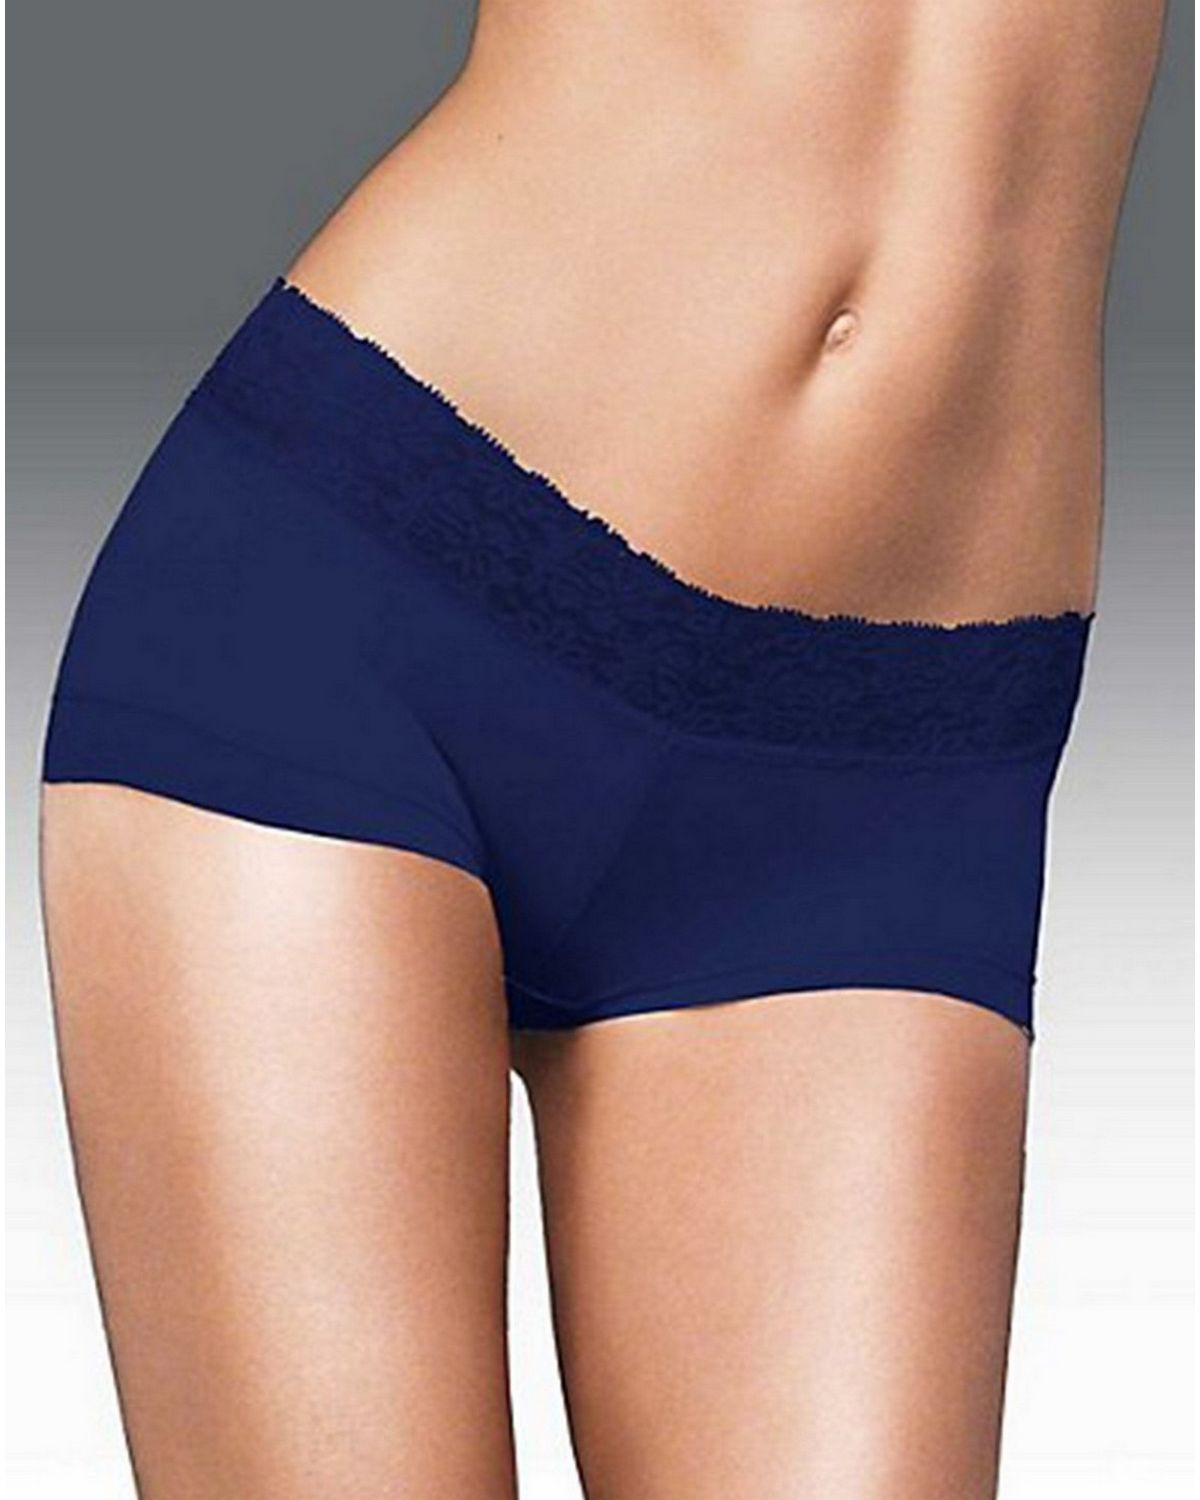 Maidenform 40859 Cotton Dream Boyshort with Lace - Navy - 5 40859